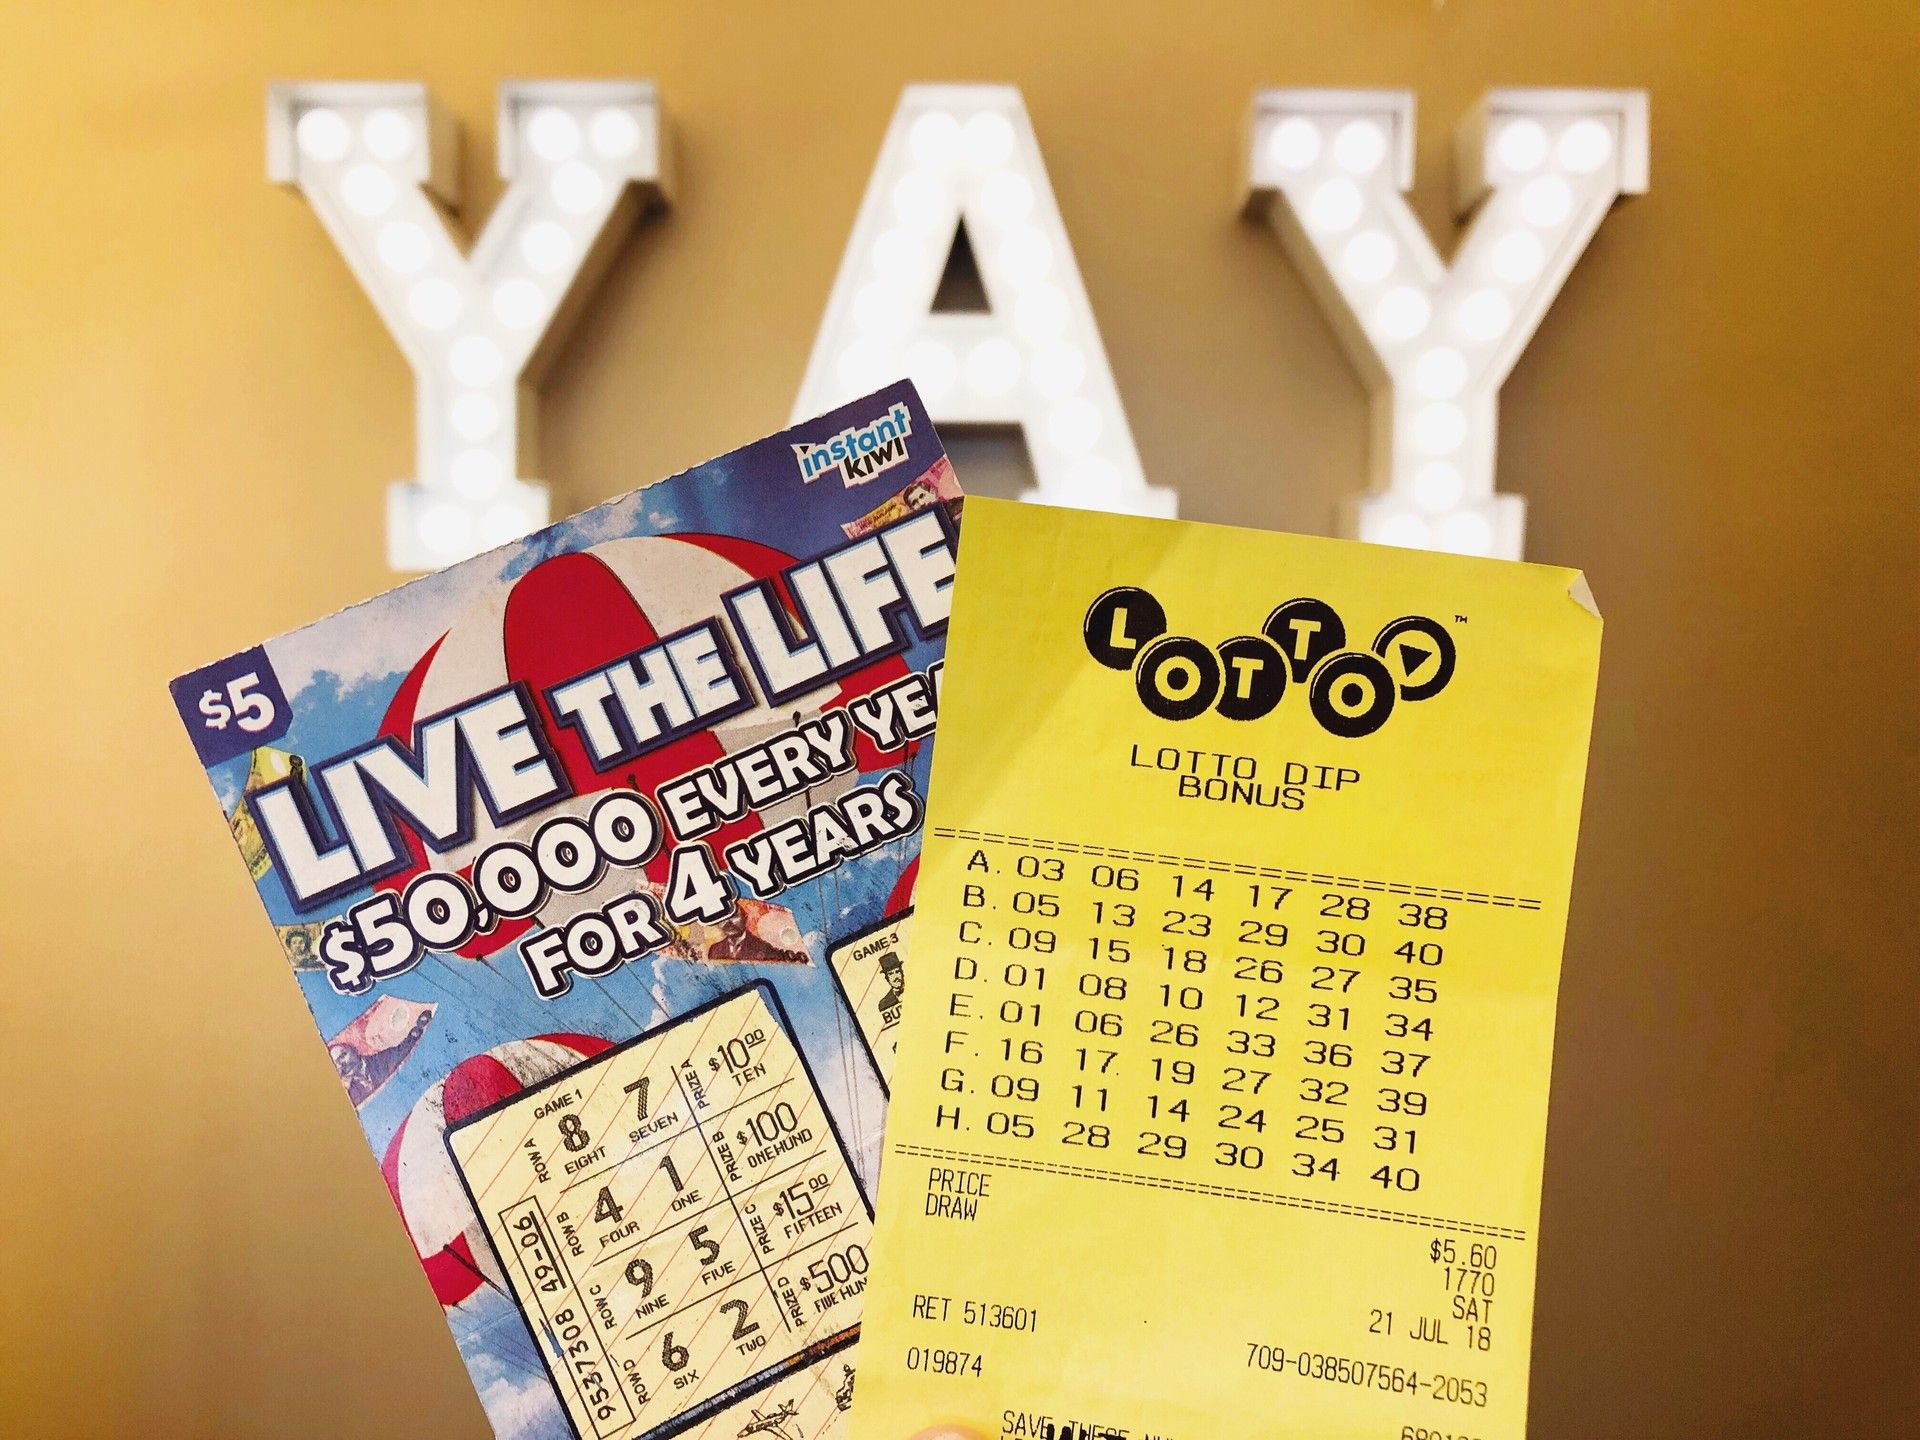 Million Dollar Xmas Lotto Draw On Christmas Day In 2020 Lotto Lotto Draw Winning Lottery Ticket